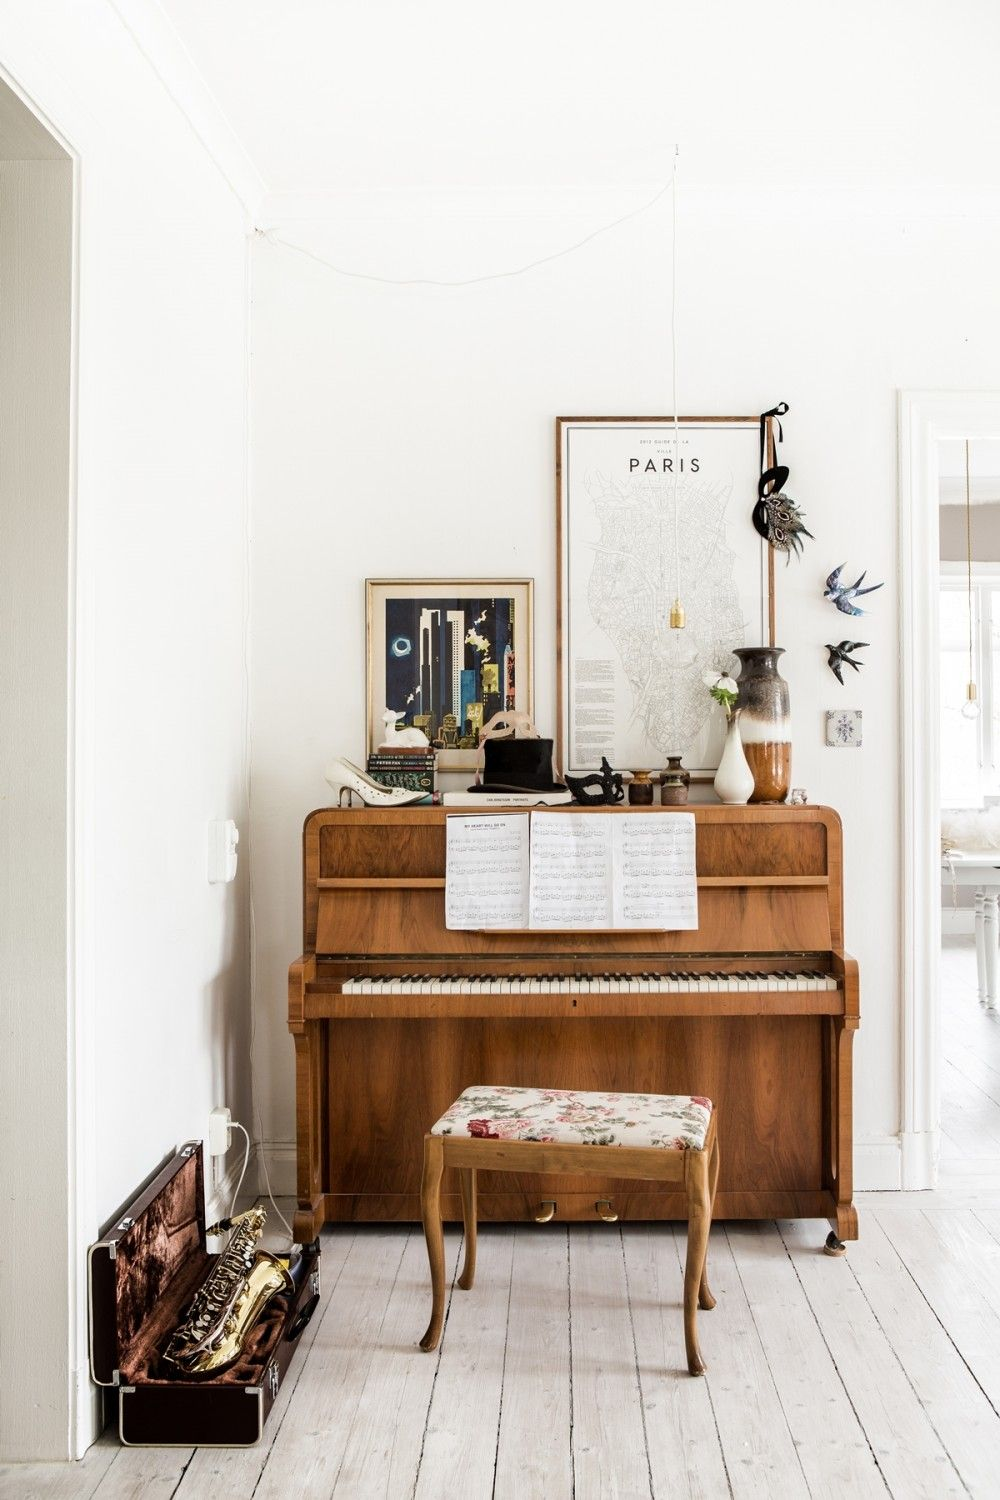 Pin by Calvin Copel on APARTMENT INTERIORS | Pinterest | Pianos ...